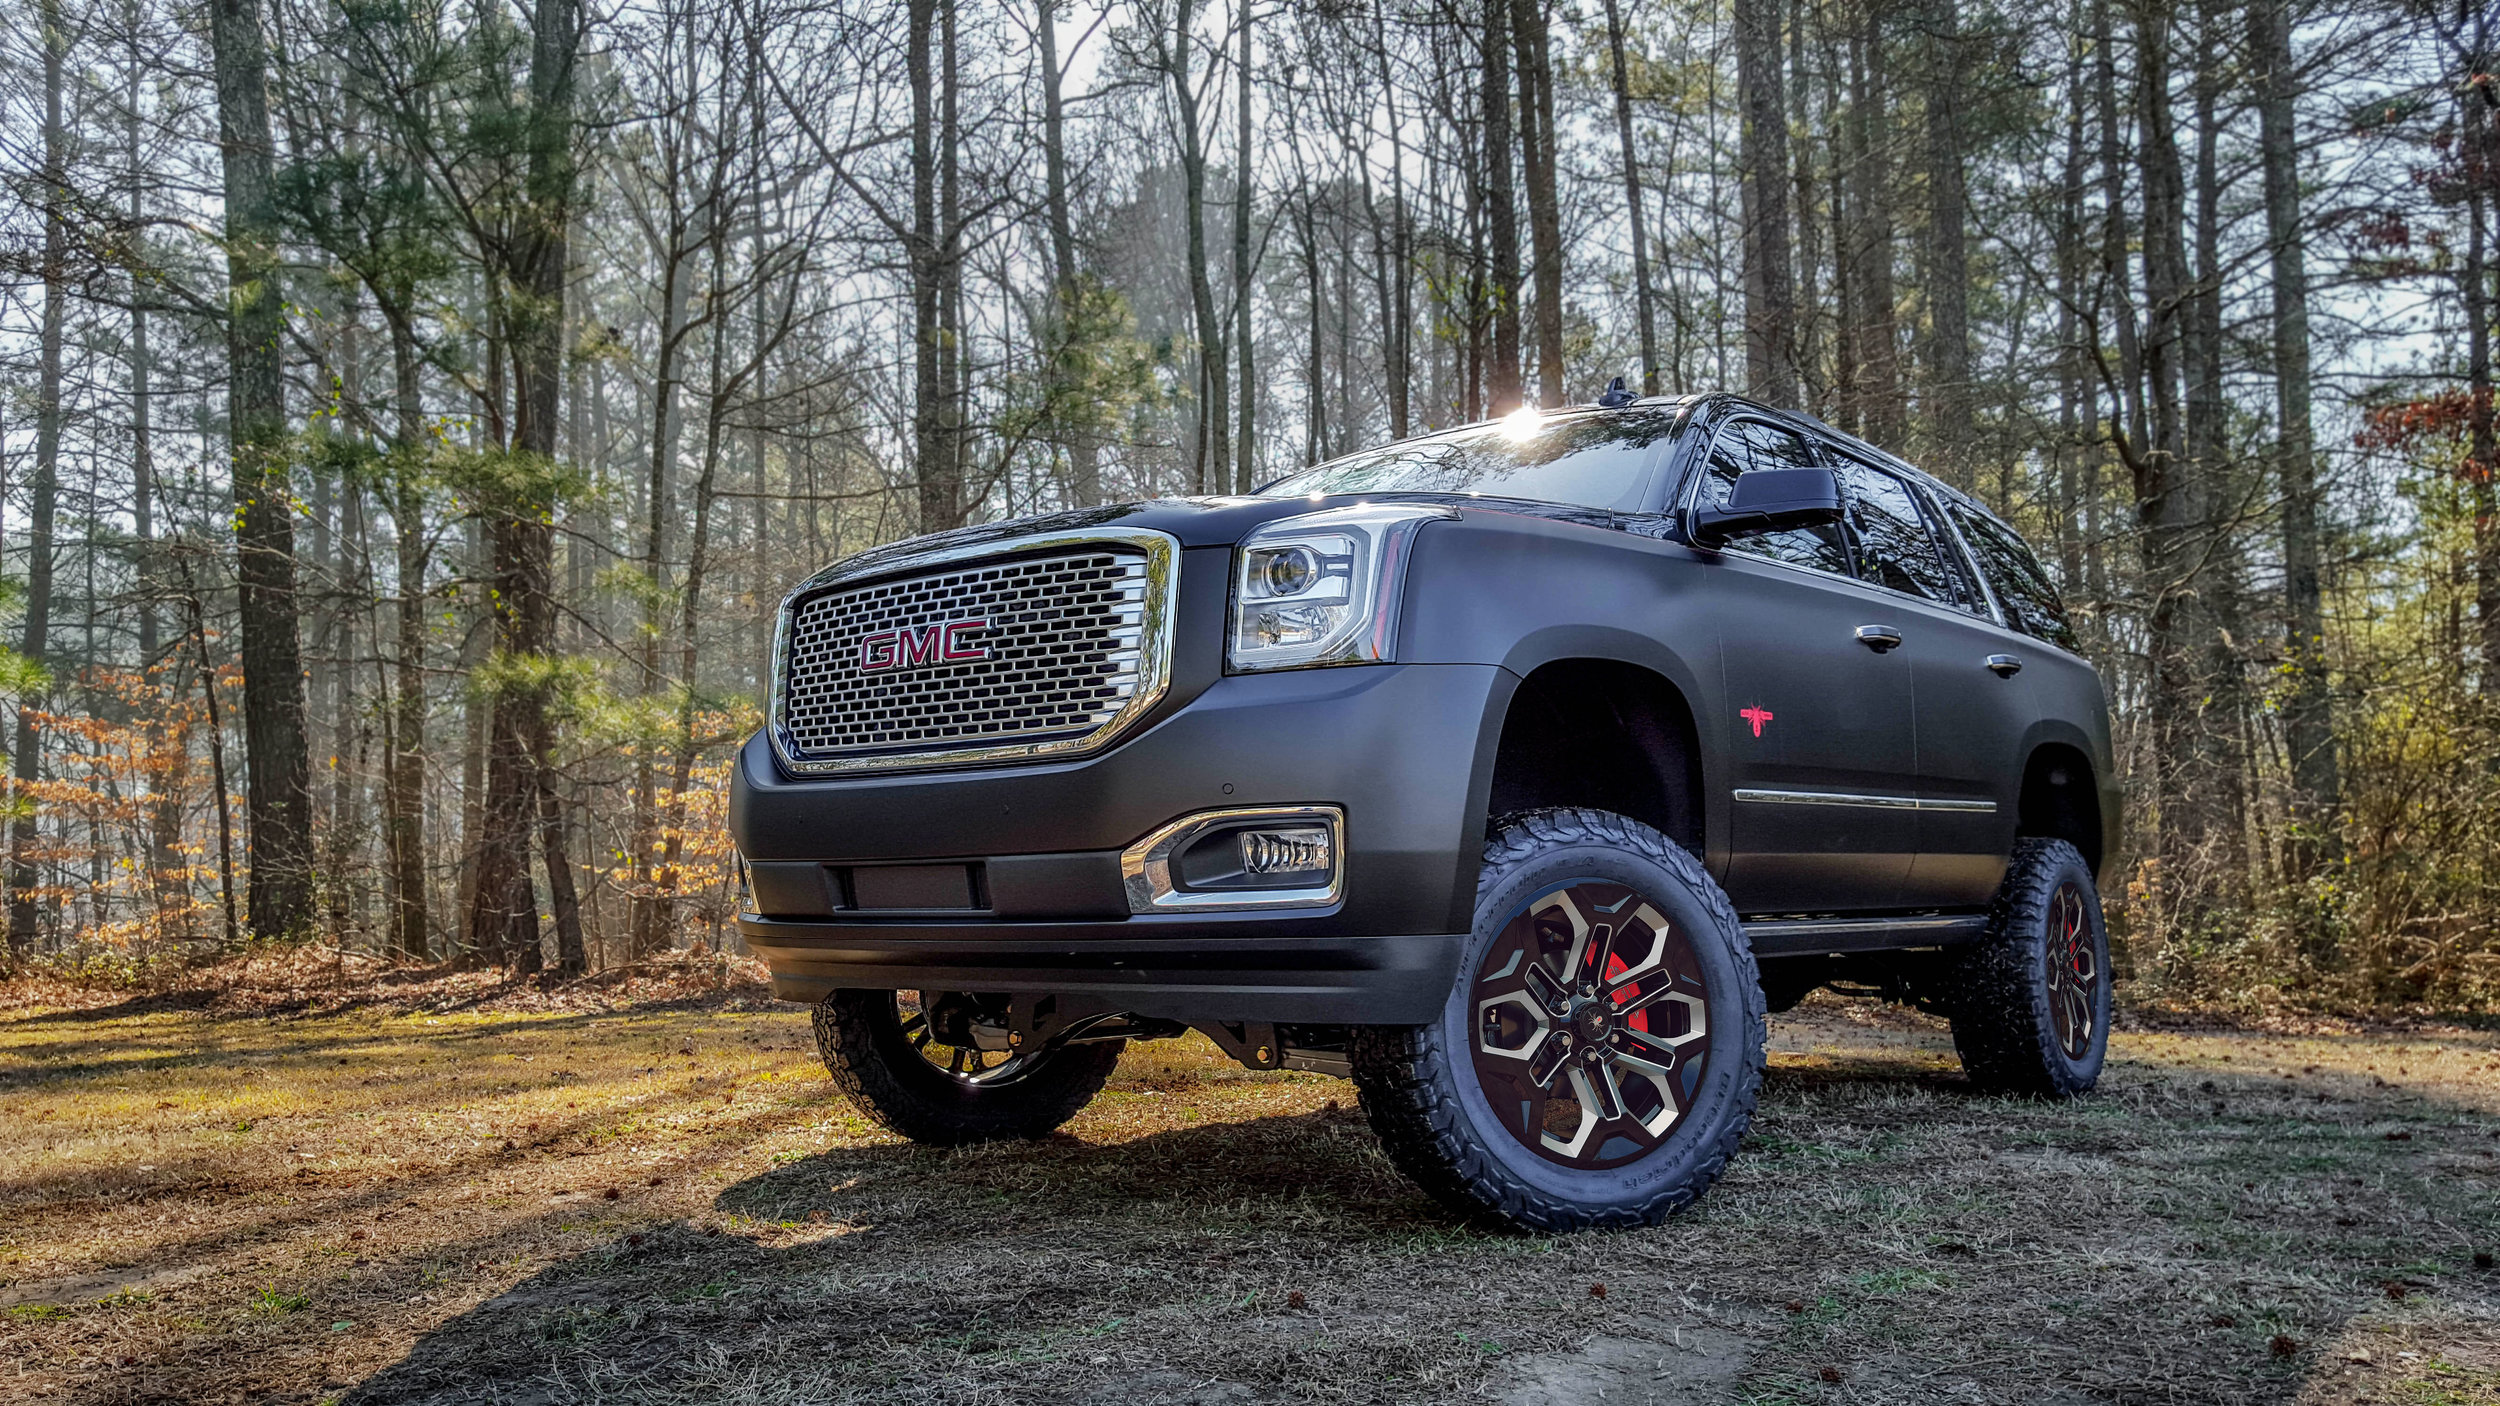 Gmc Yukon Lifted Suvs Sca Performance Black Widow Lifted Trucks